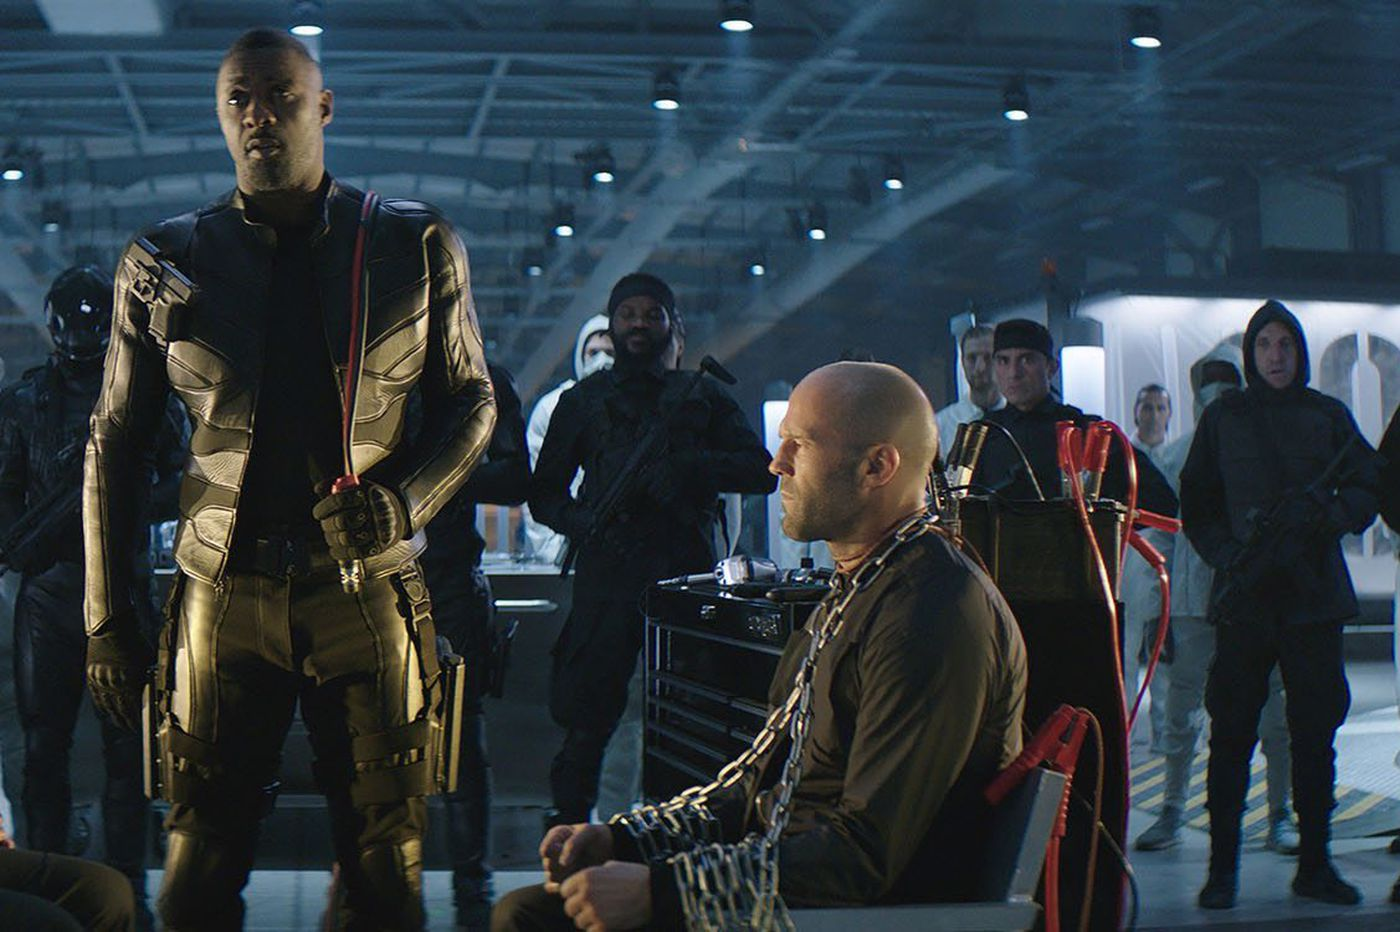 'Fast & Furious Presents: Hobbs & Shaw': Dwayne Johnson and Jason Statham take 'Fast and Furious' for a spin off